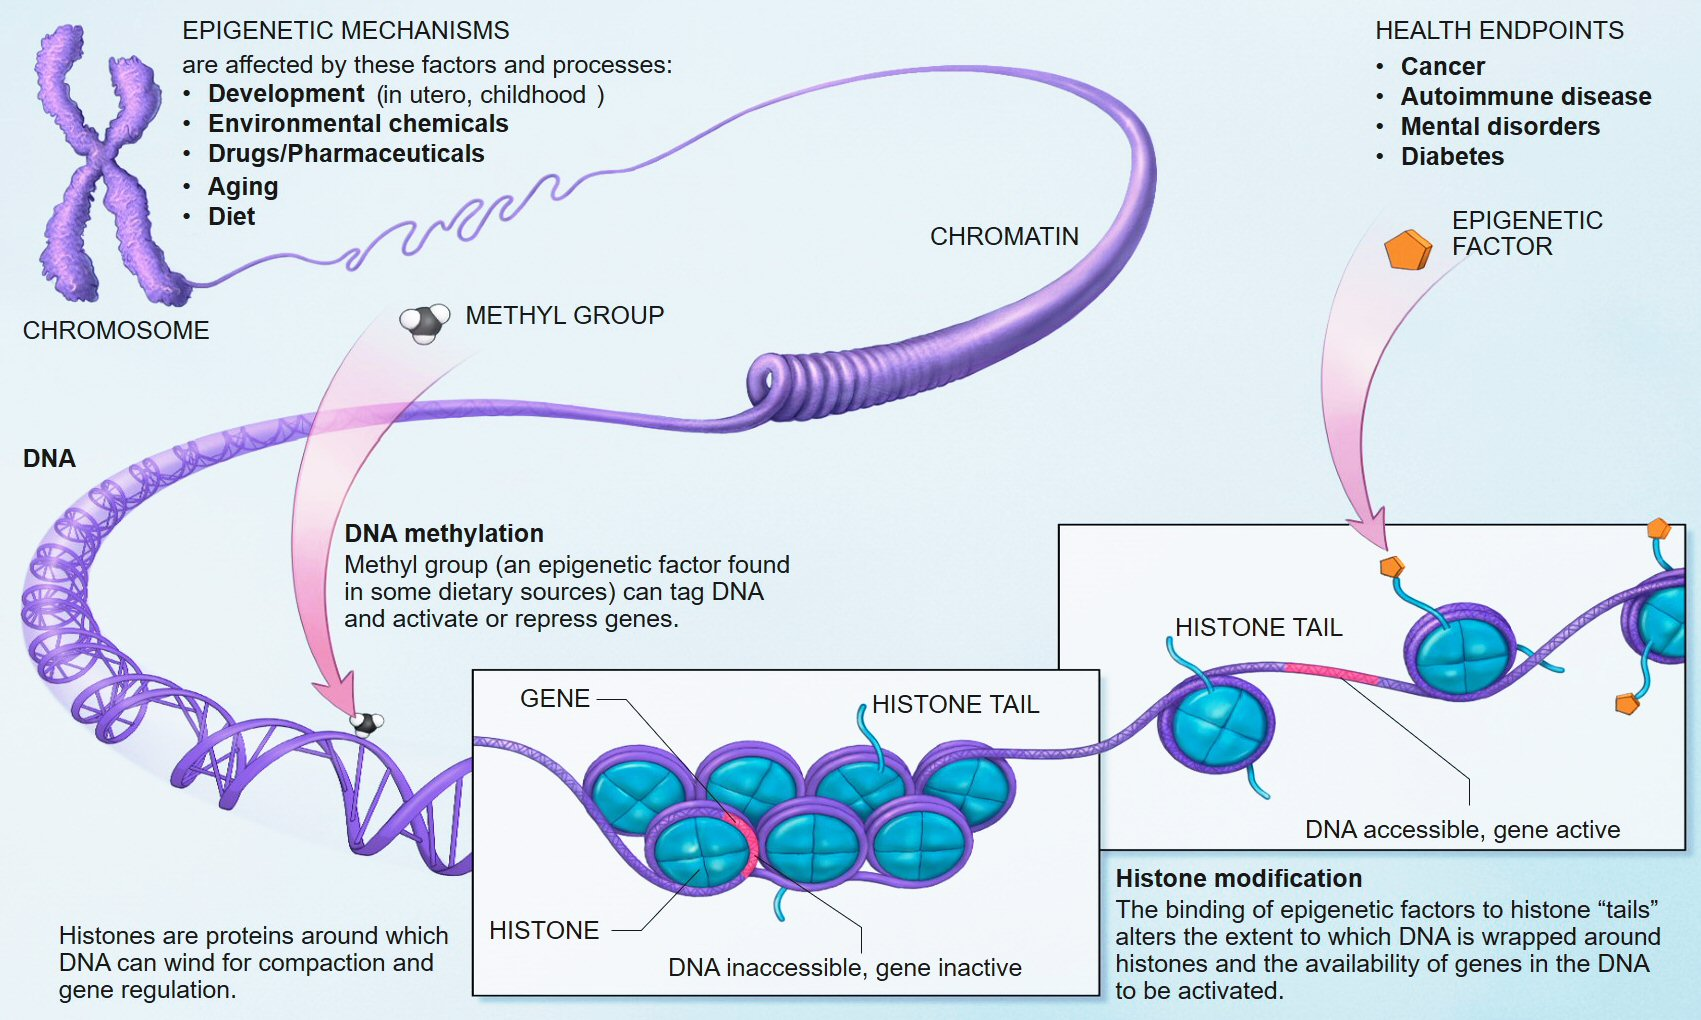 File:Epigenetic mechanisms.jpg